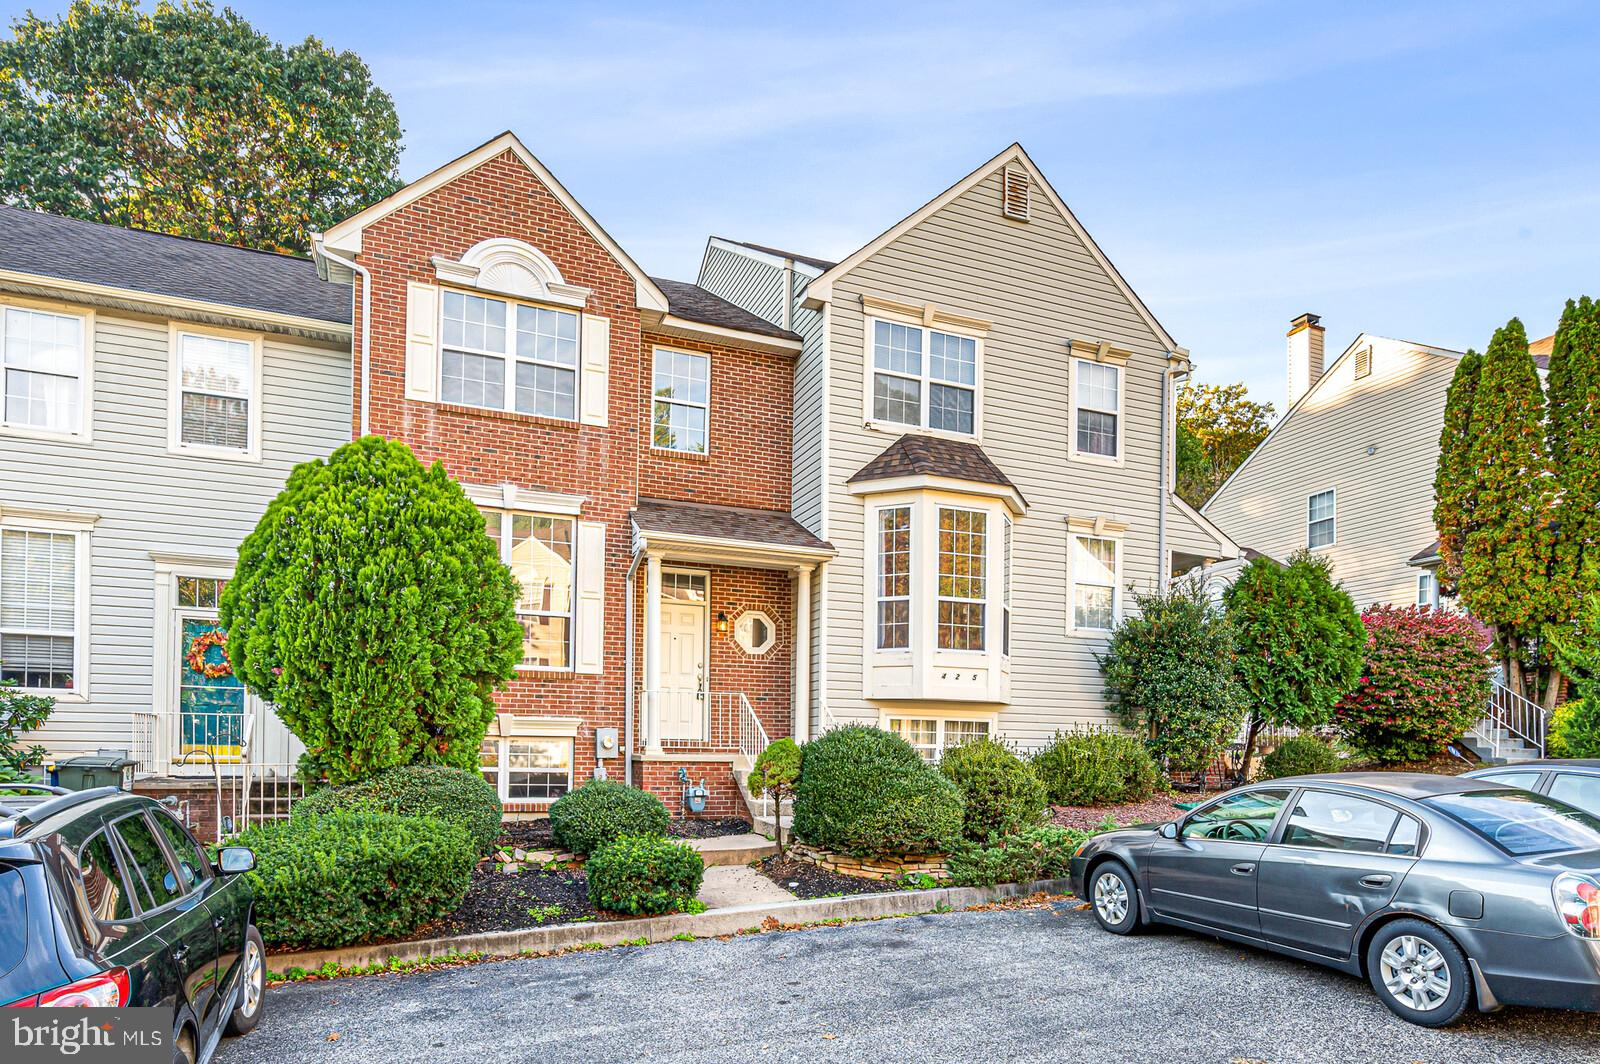 Just remodeled!! Wonderful 3 bedroom 2.1 bath townhome in the sought after community of Northpointe.